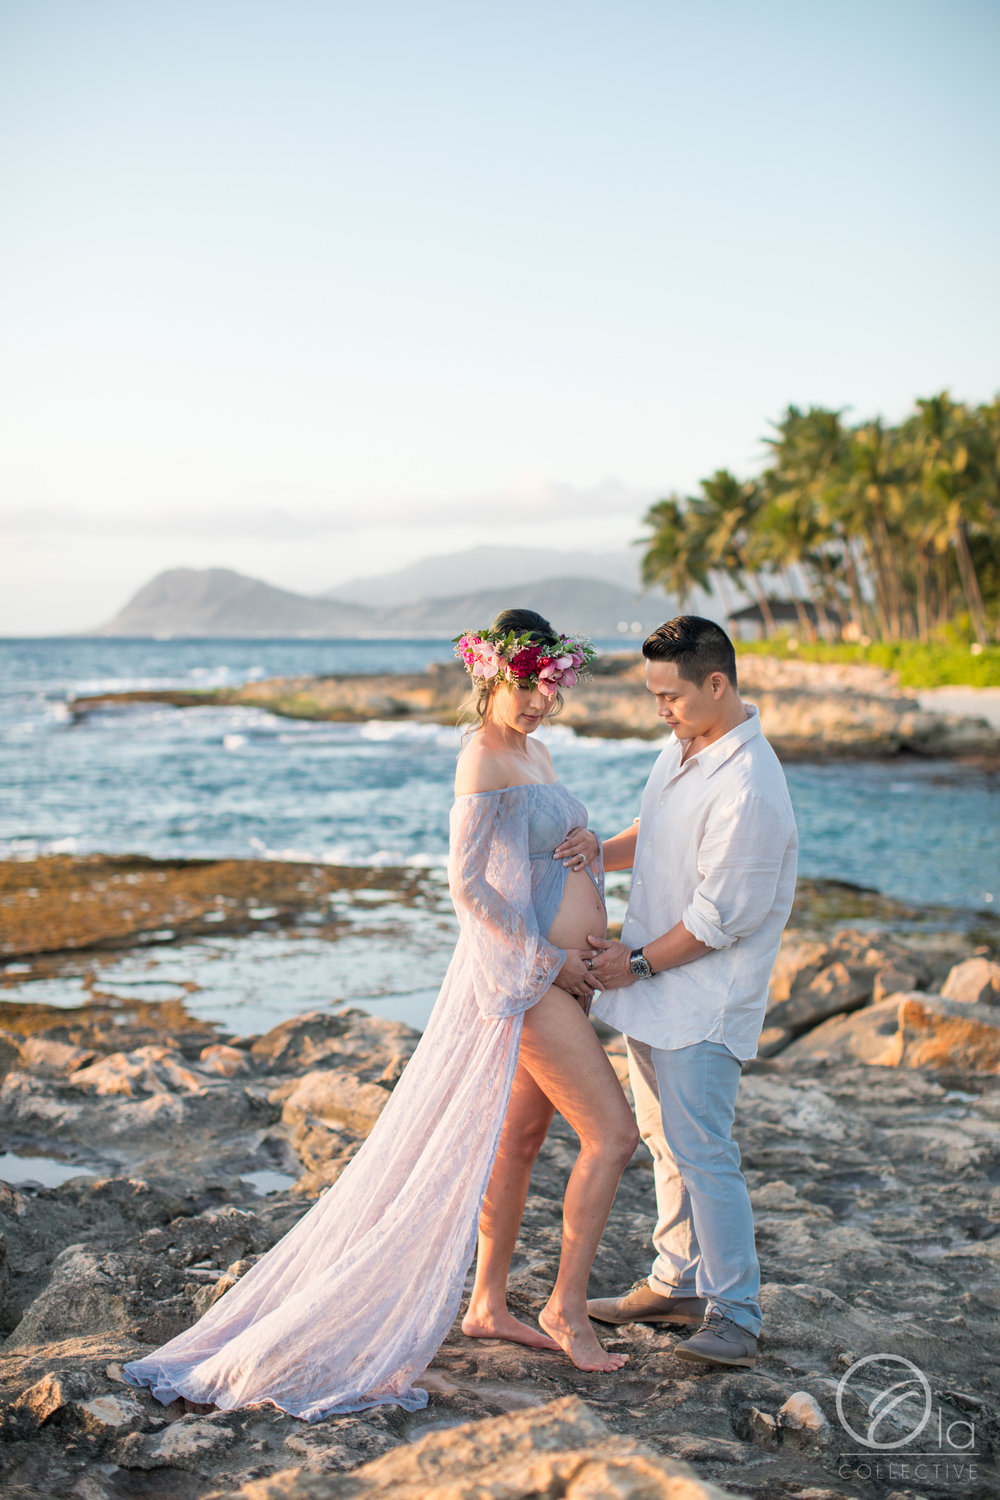 Four-Seasons-Oahu-Maternity-Photographer-Ola-Collective-5.jpg